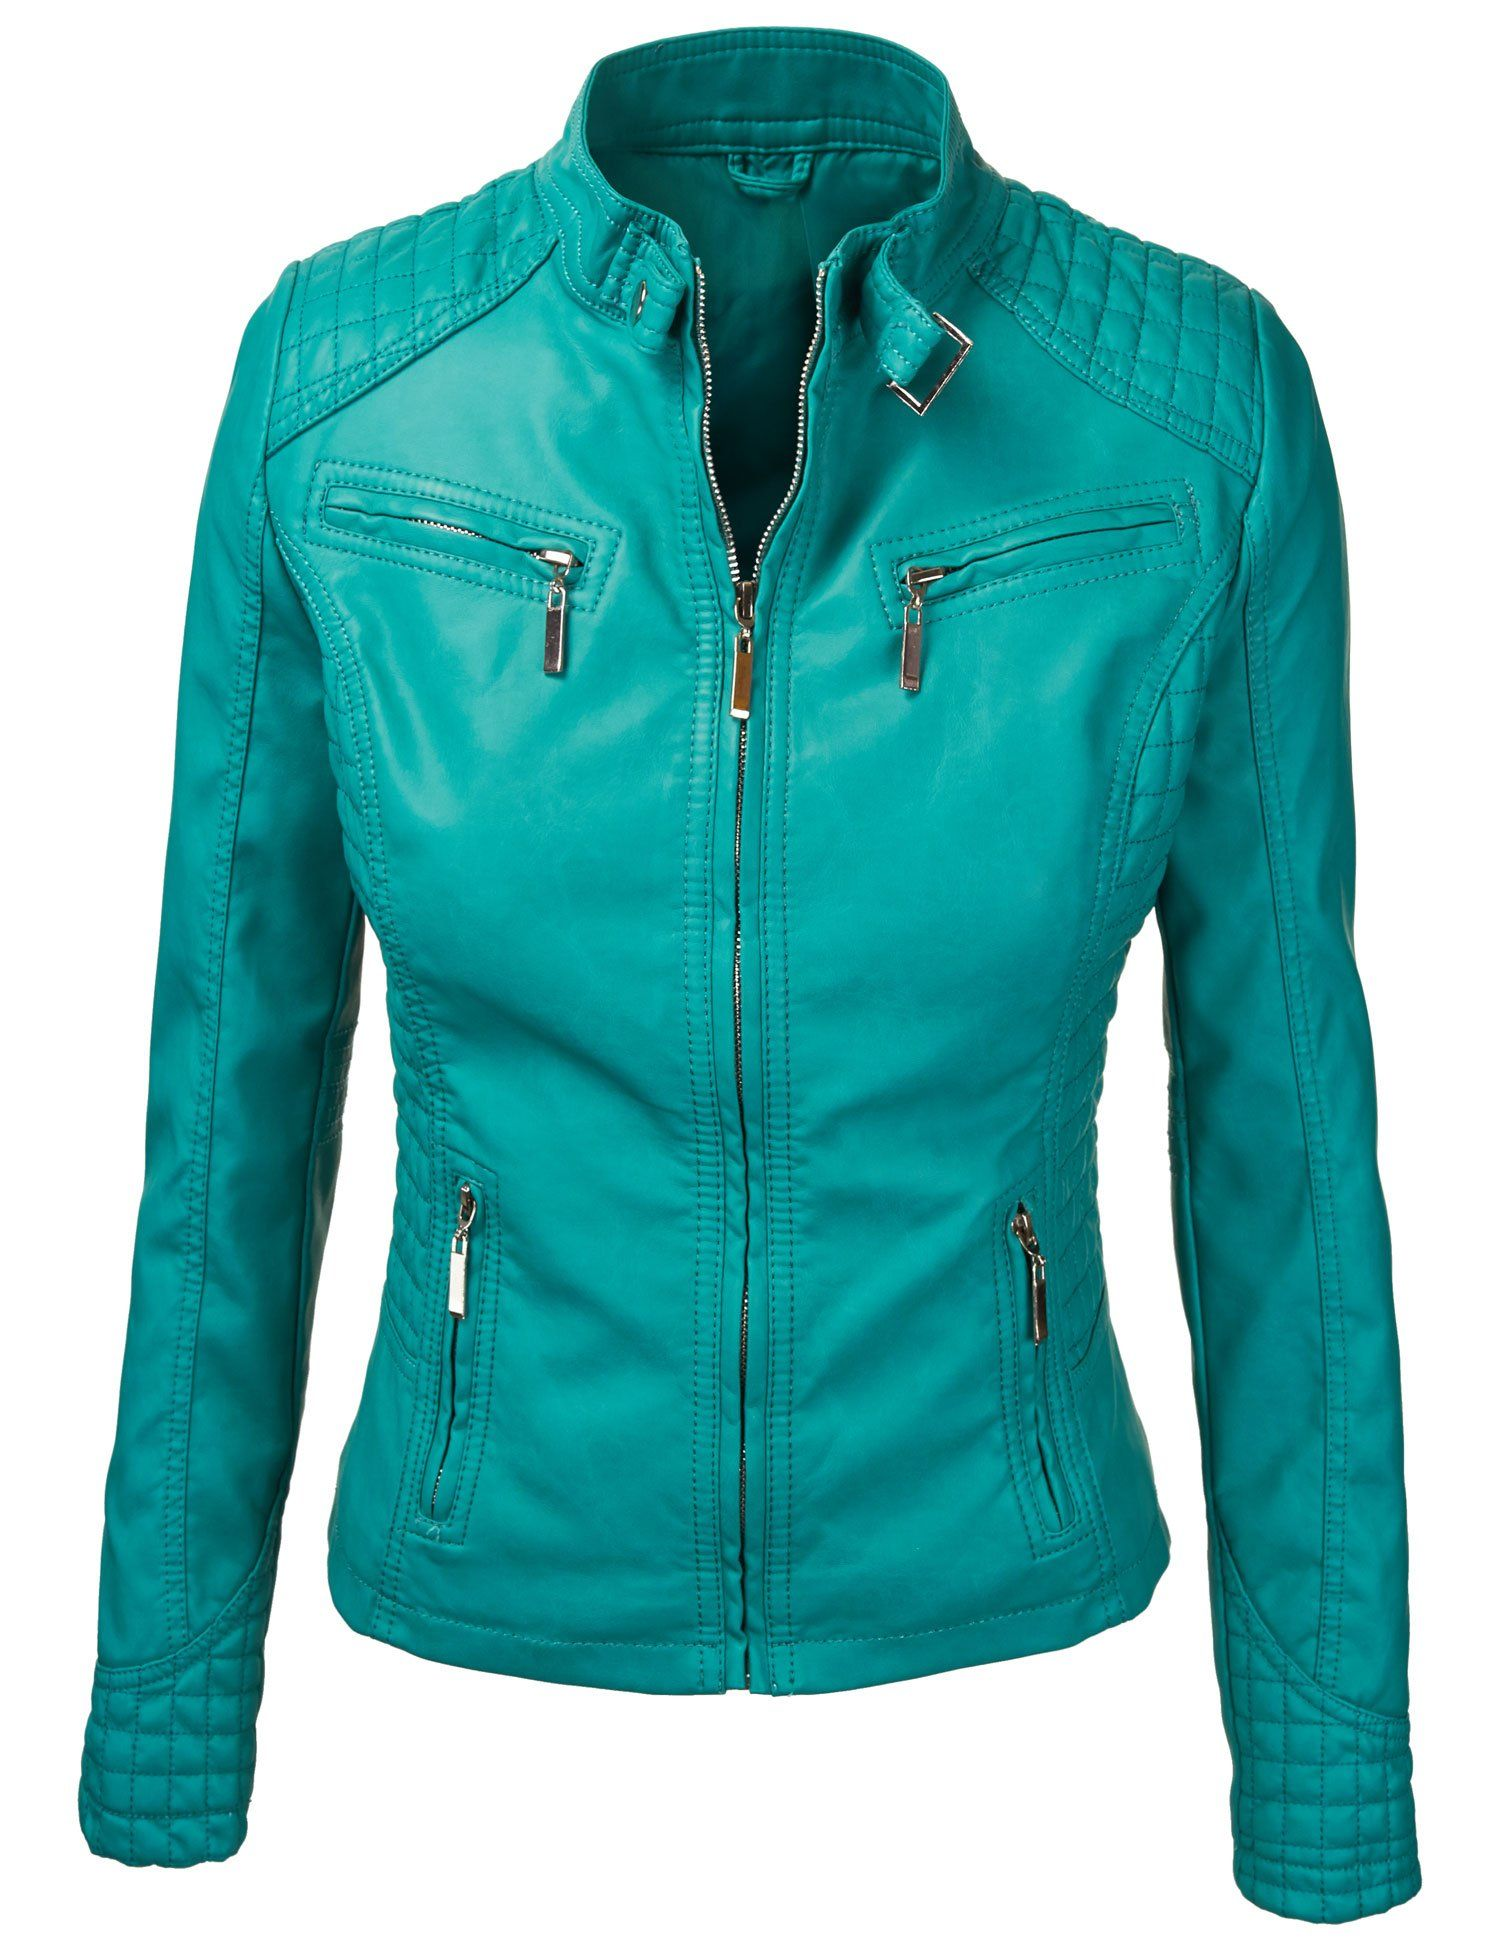 Lock and love women's quilted biker jacket